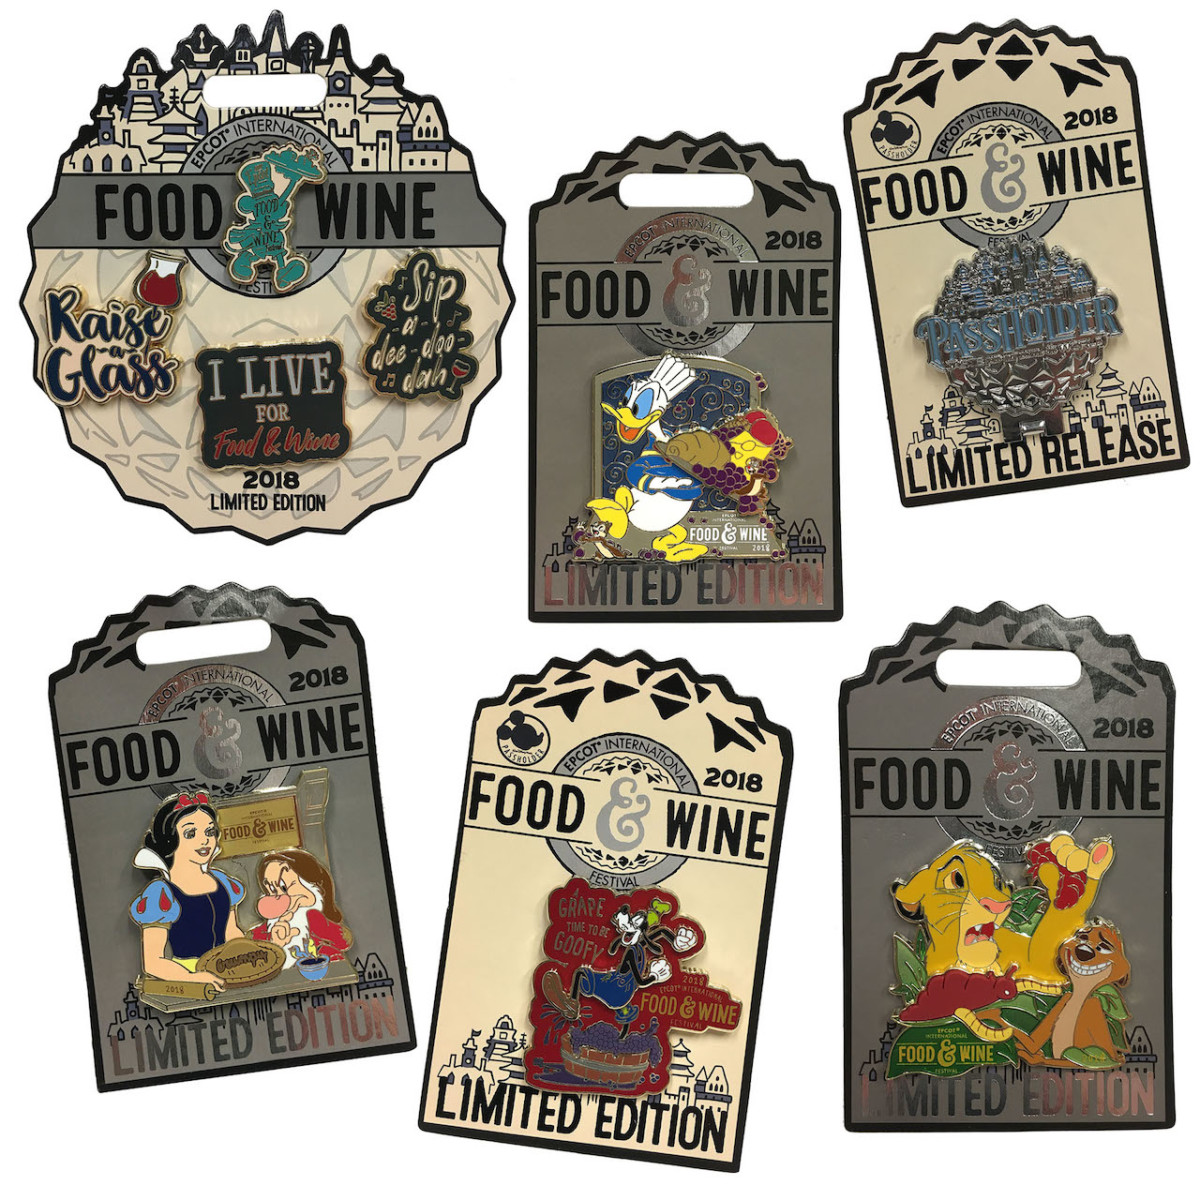 Commemorative Merchandise Mixes Function and Fun for the 2018 Epcot International Food & Wine Festival 6